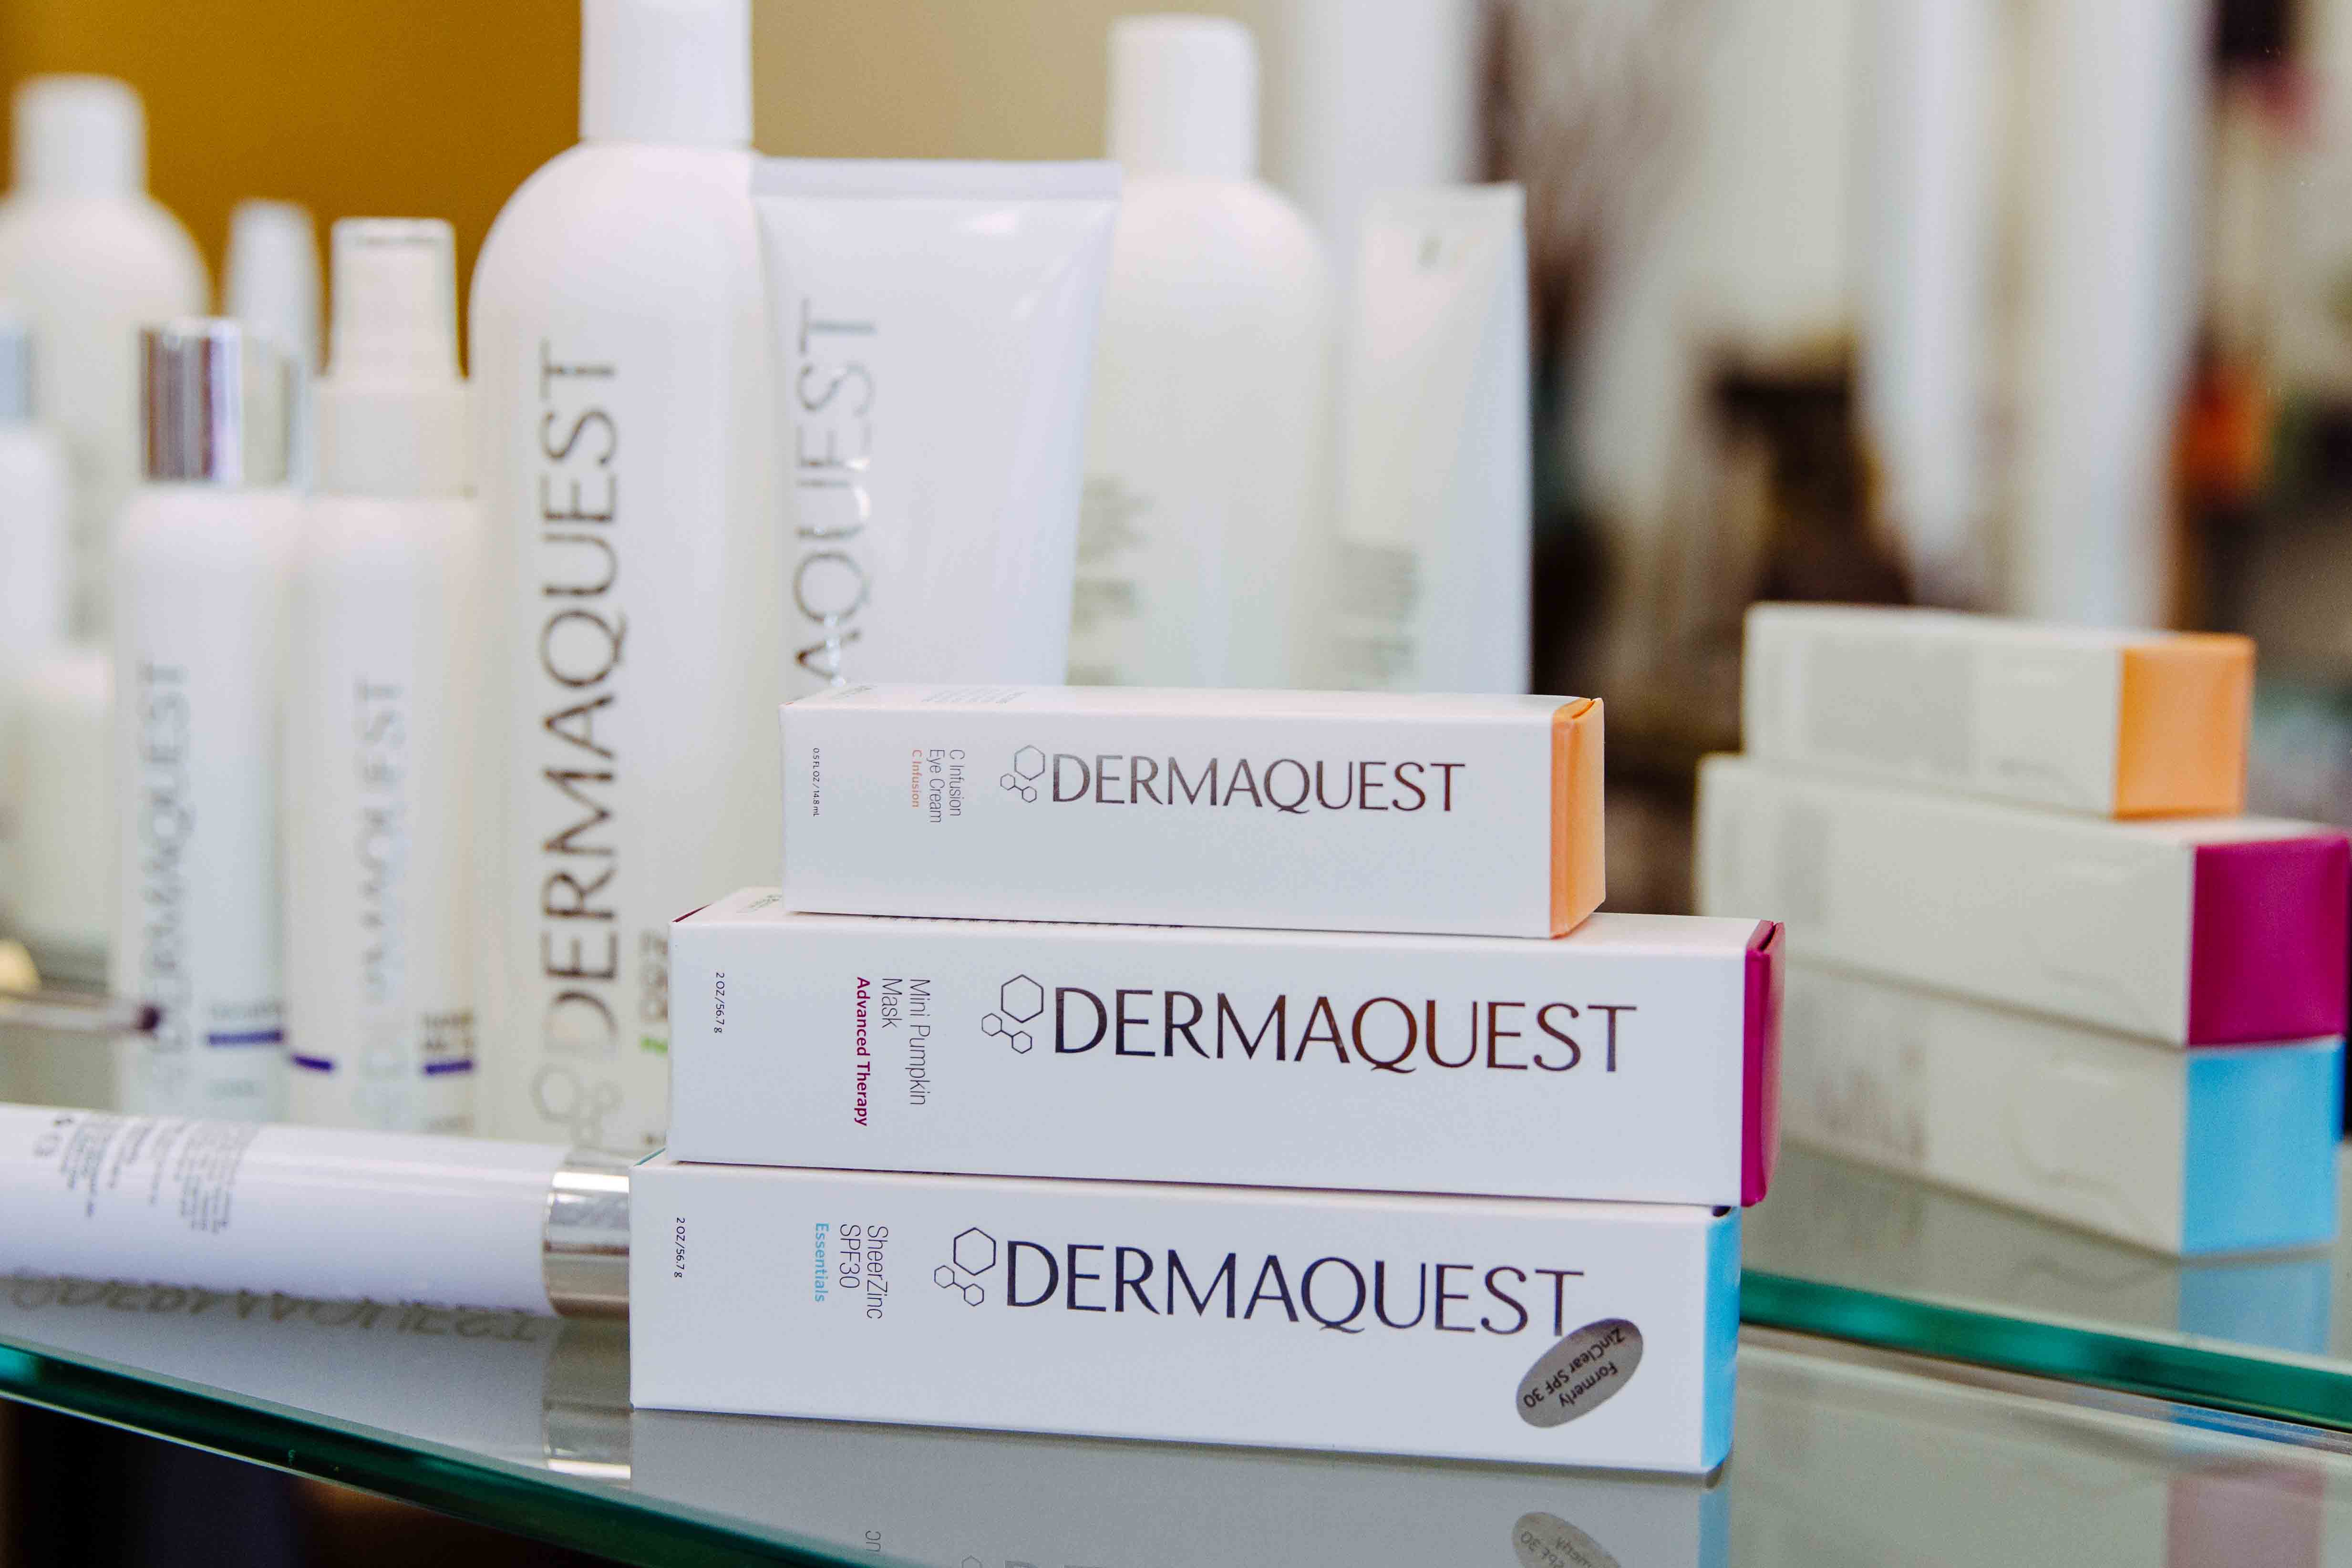 Unique Hair & Beauty Salon Dermaquest product 3